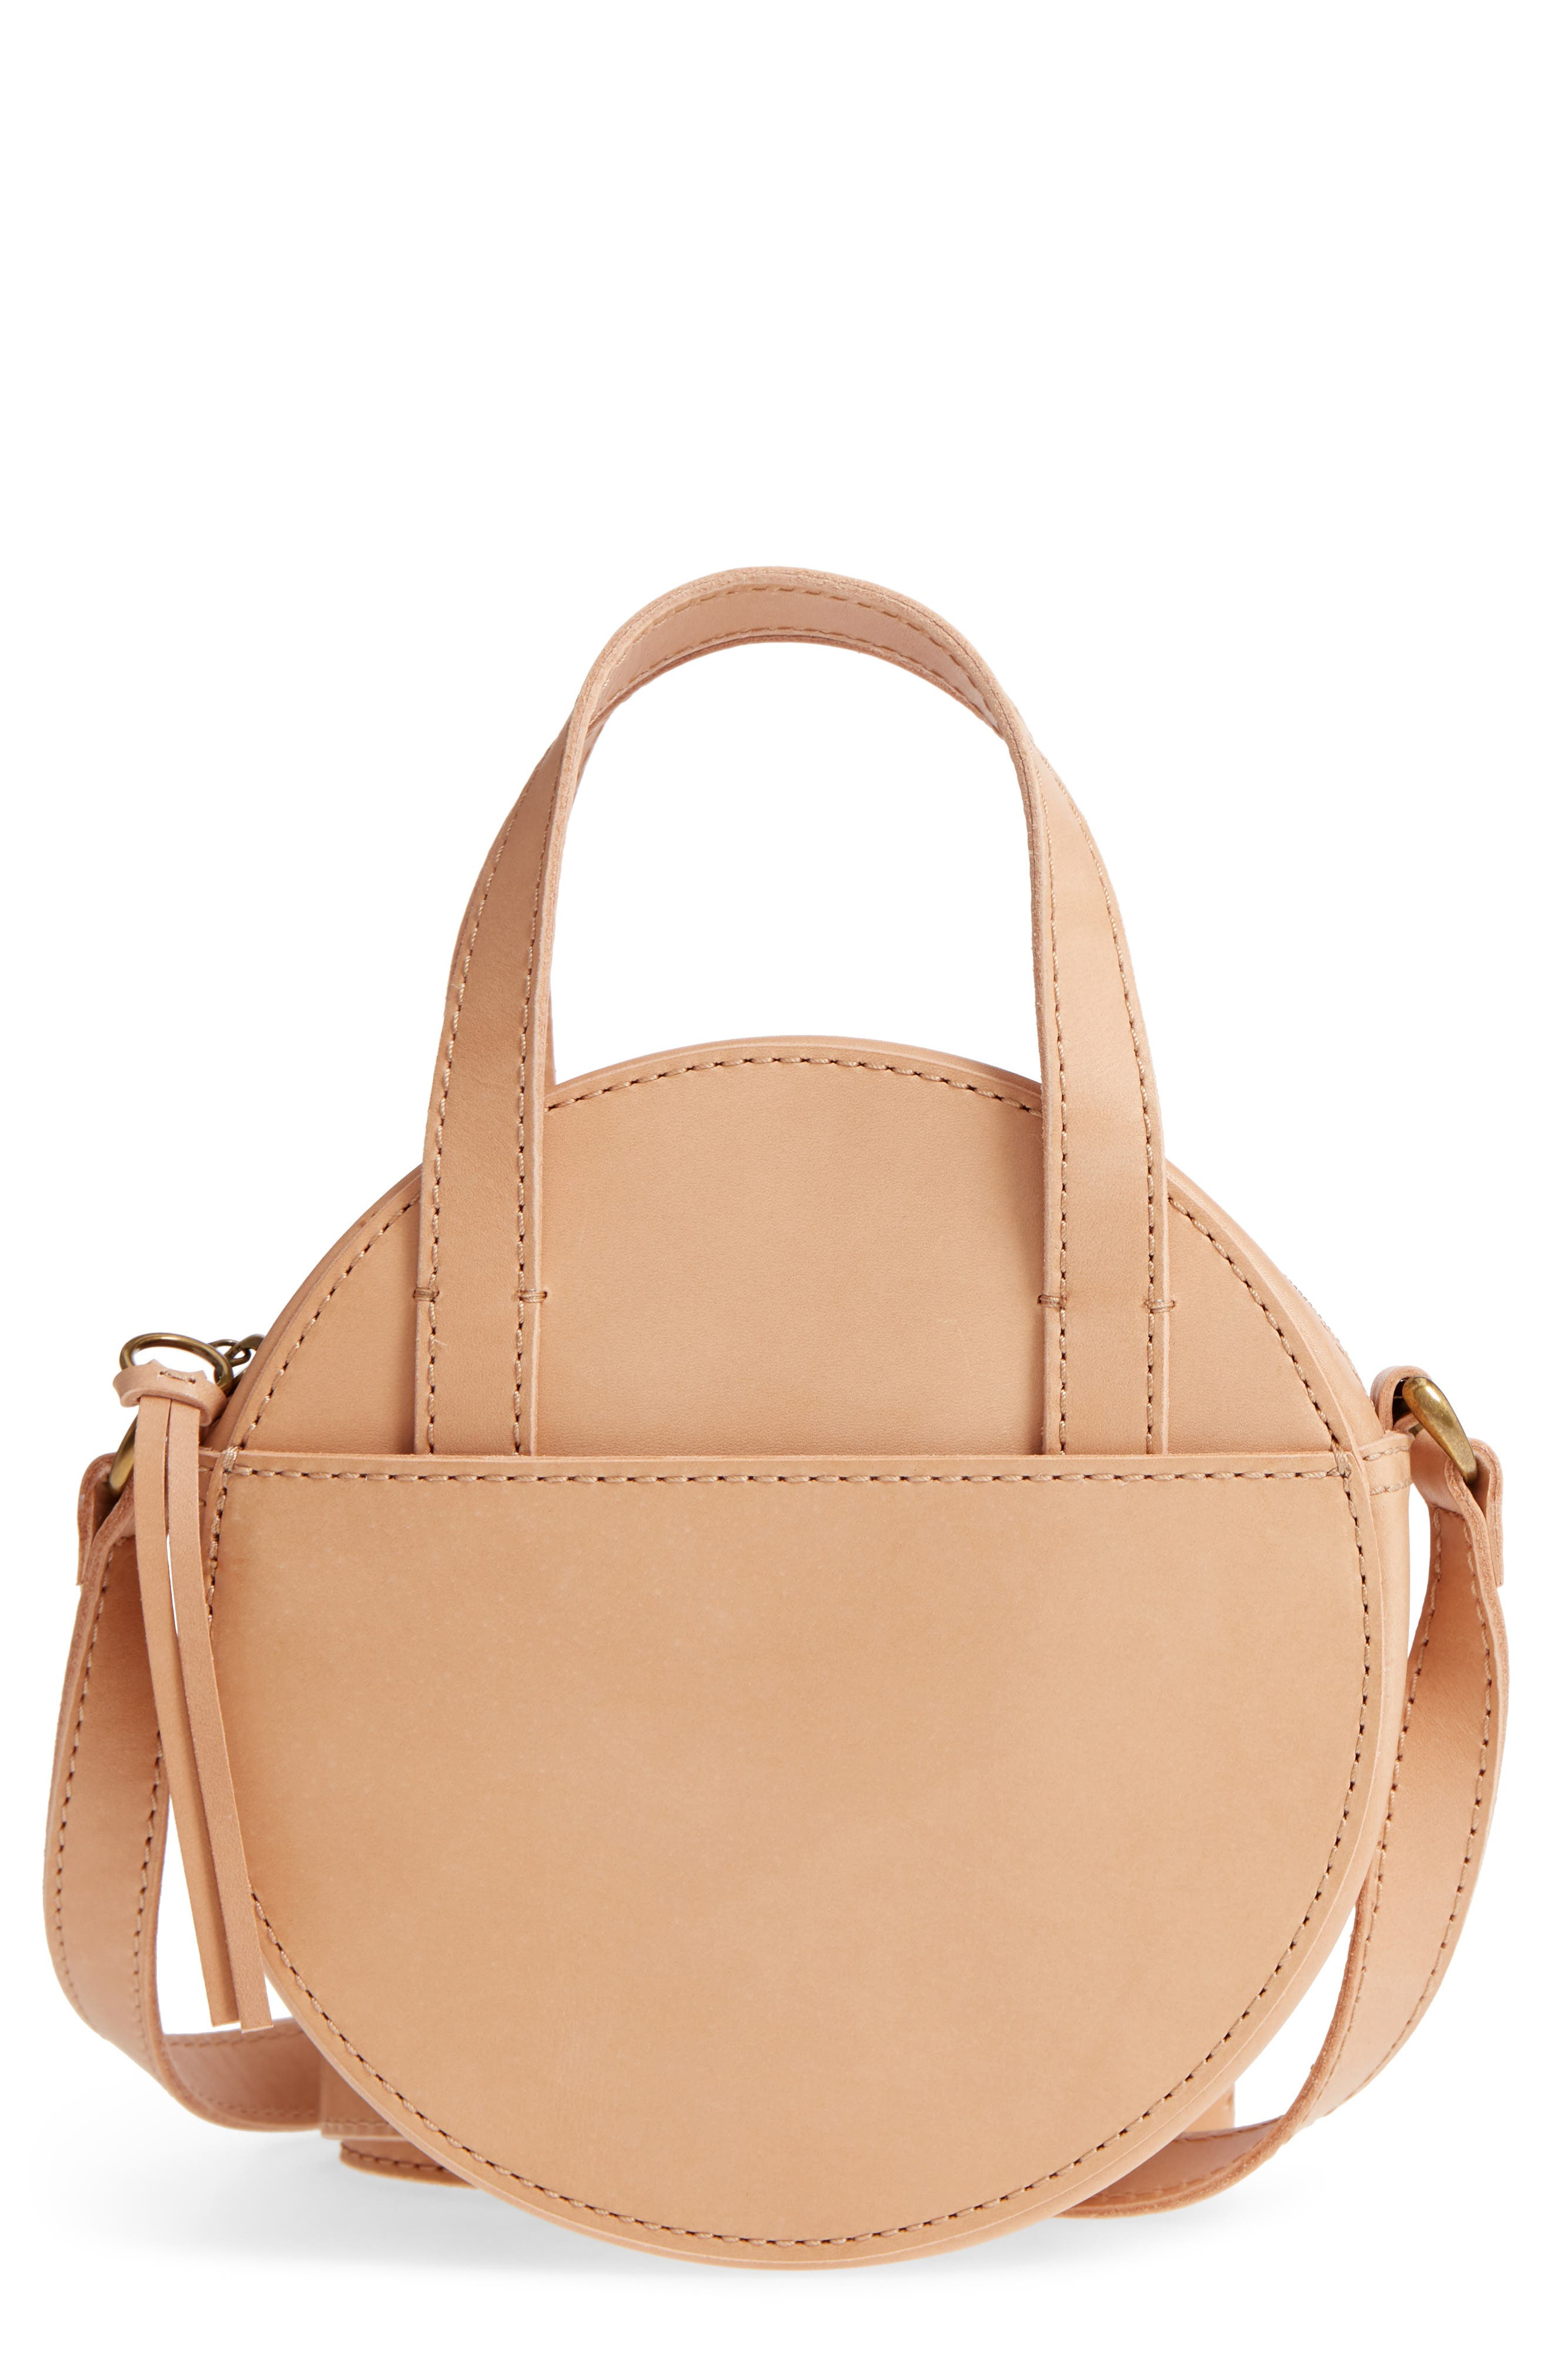 MADEWELL,                             Juno Circle Leather Crossbody Bag,                             Main thumbnail 1, color,                             250